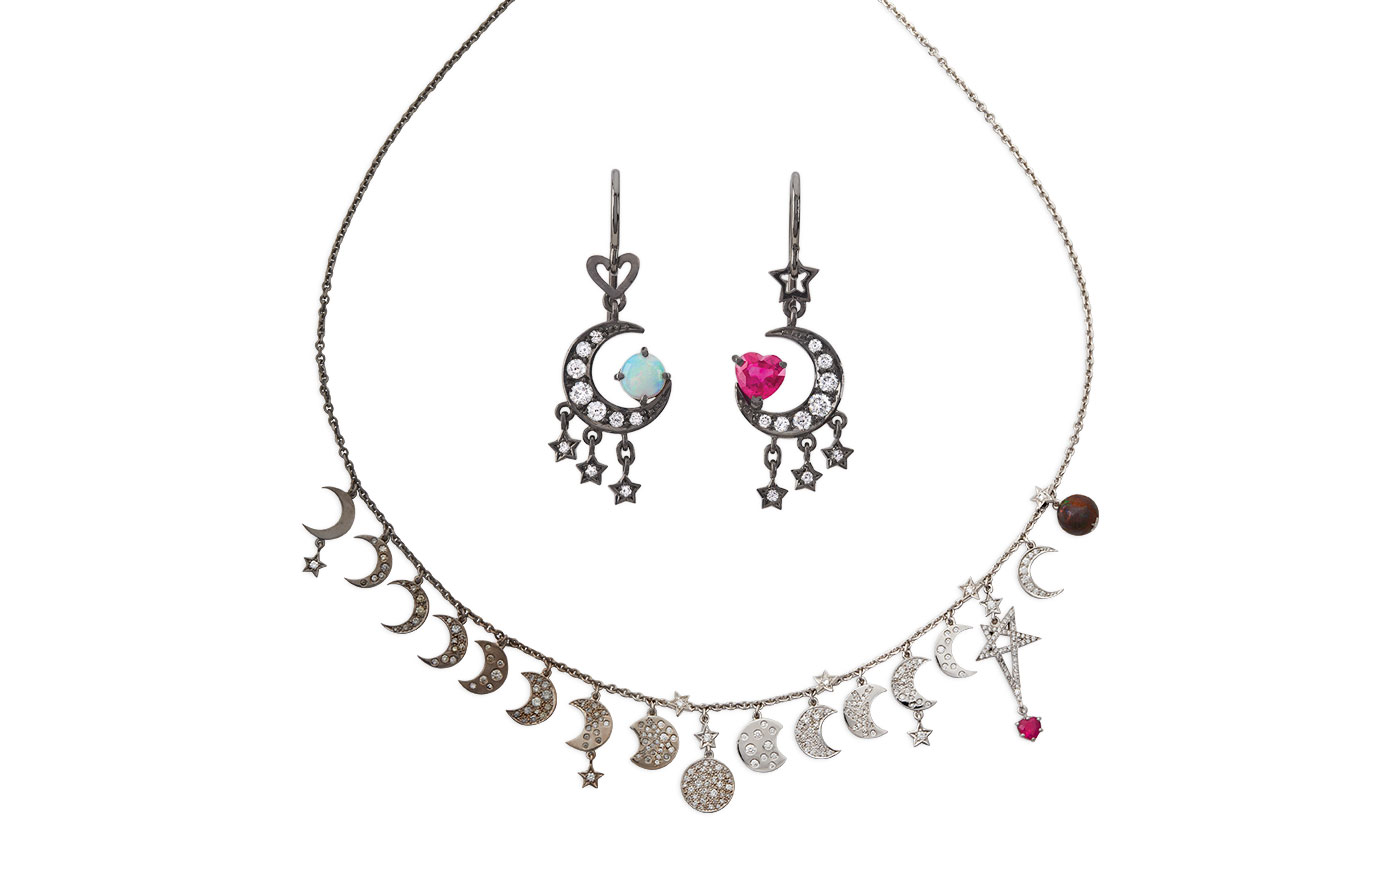 Solange Azagury-Partridge 'I love you to the Moon and back' suite with rubies, opals and diamonds in white gold